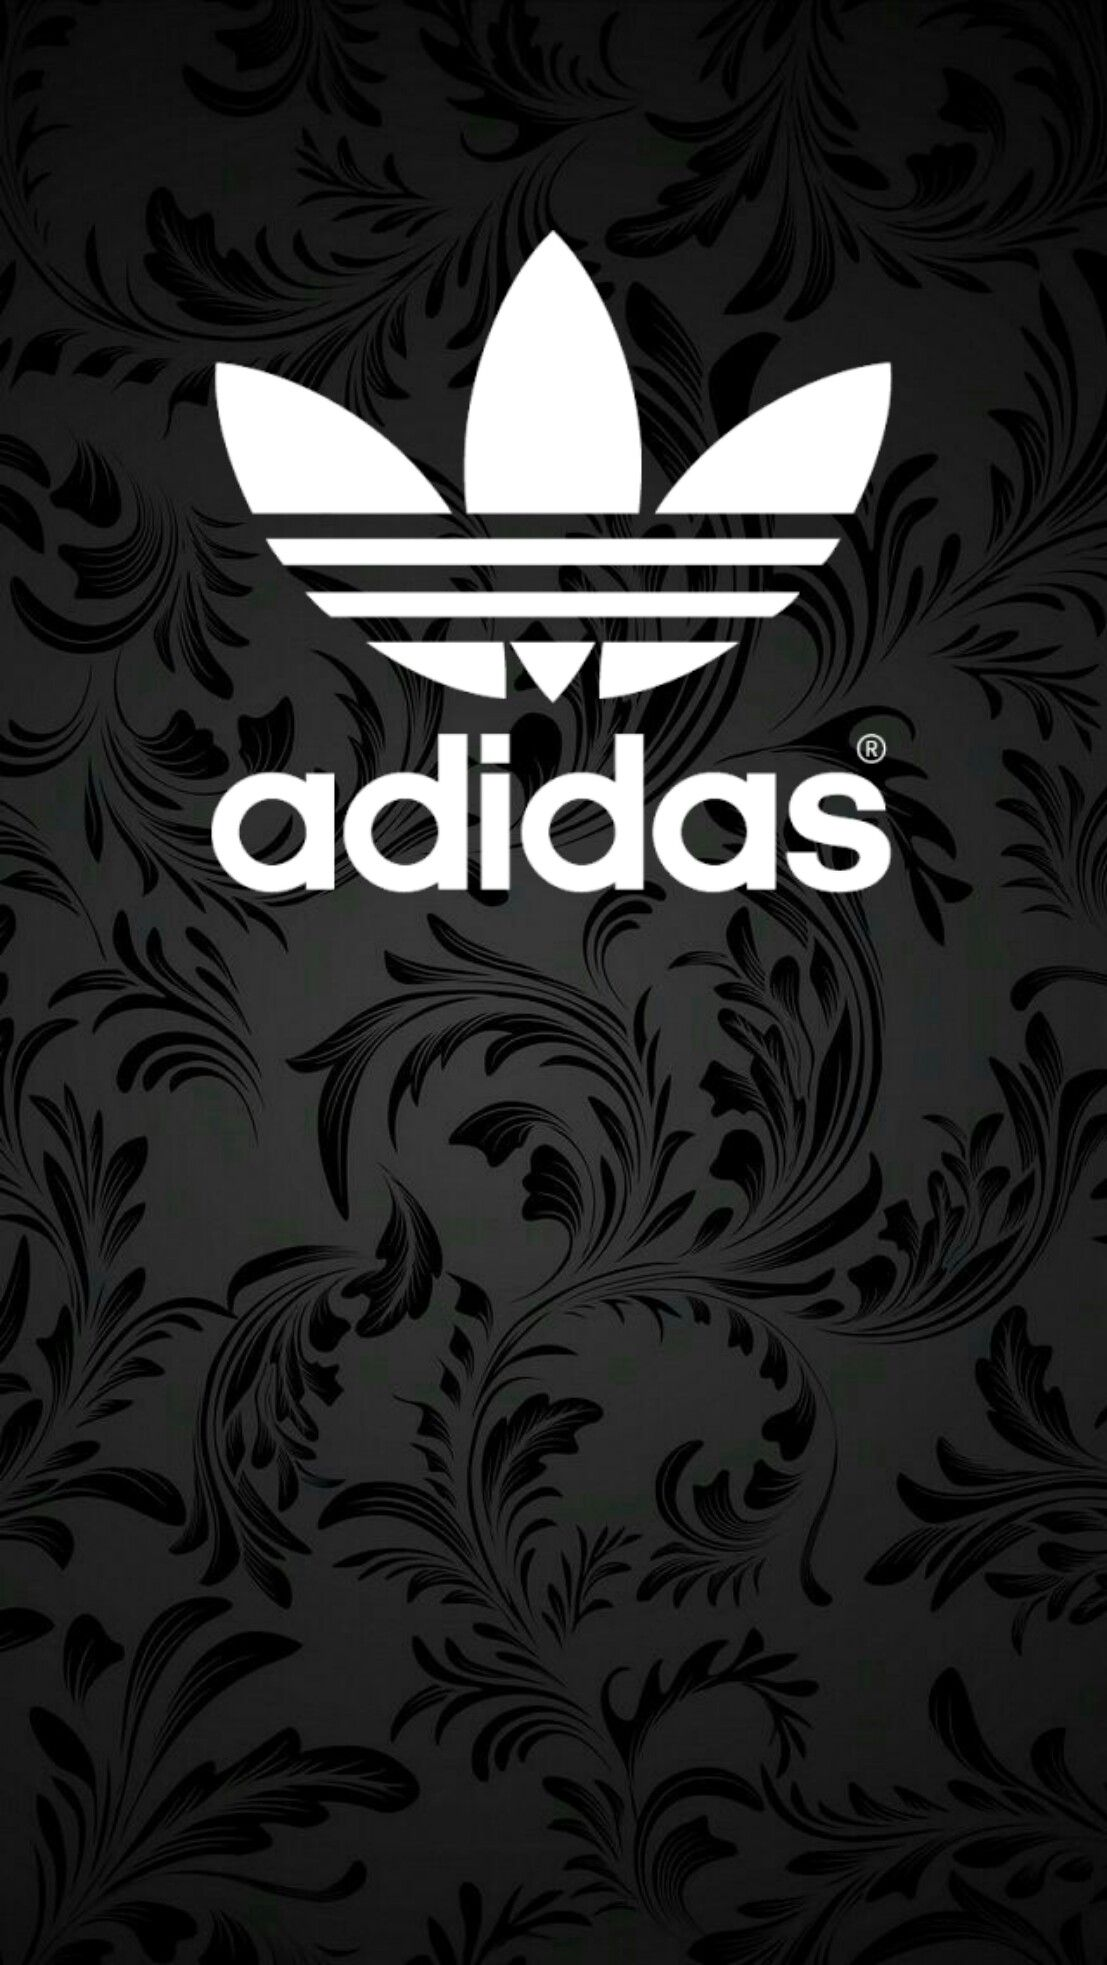 adidas black wallpaper android iphone Tapety, Tapeta